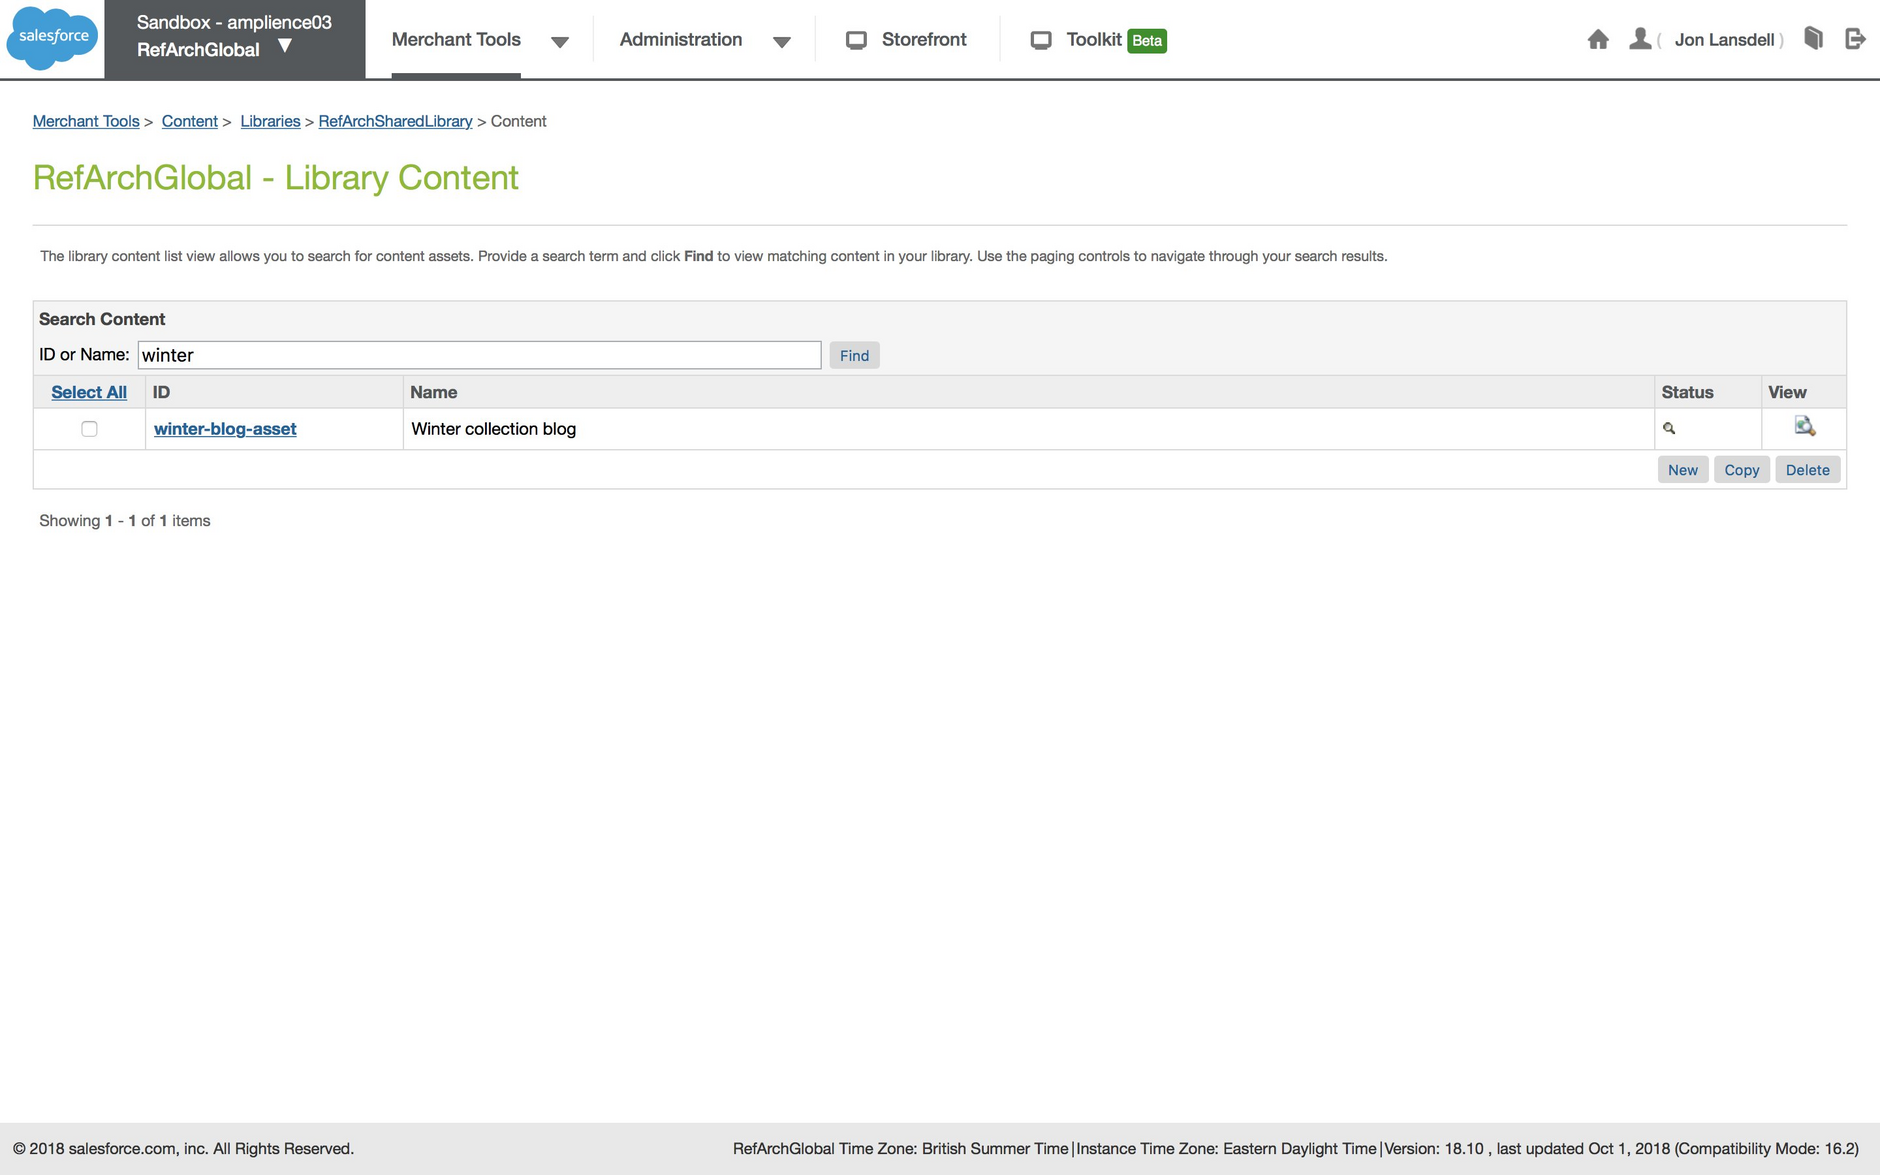 Searching for the content asset in SFCC using the value entered by the user